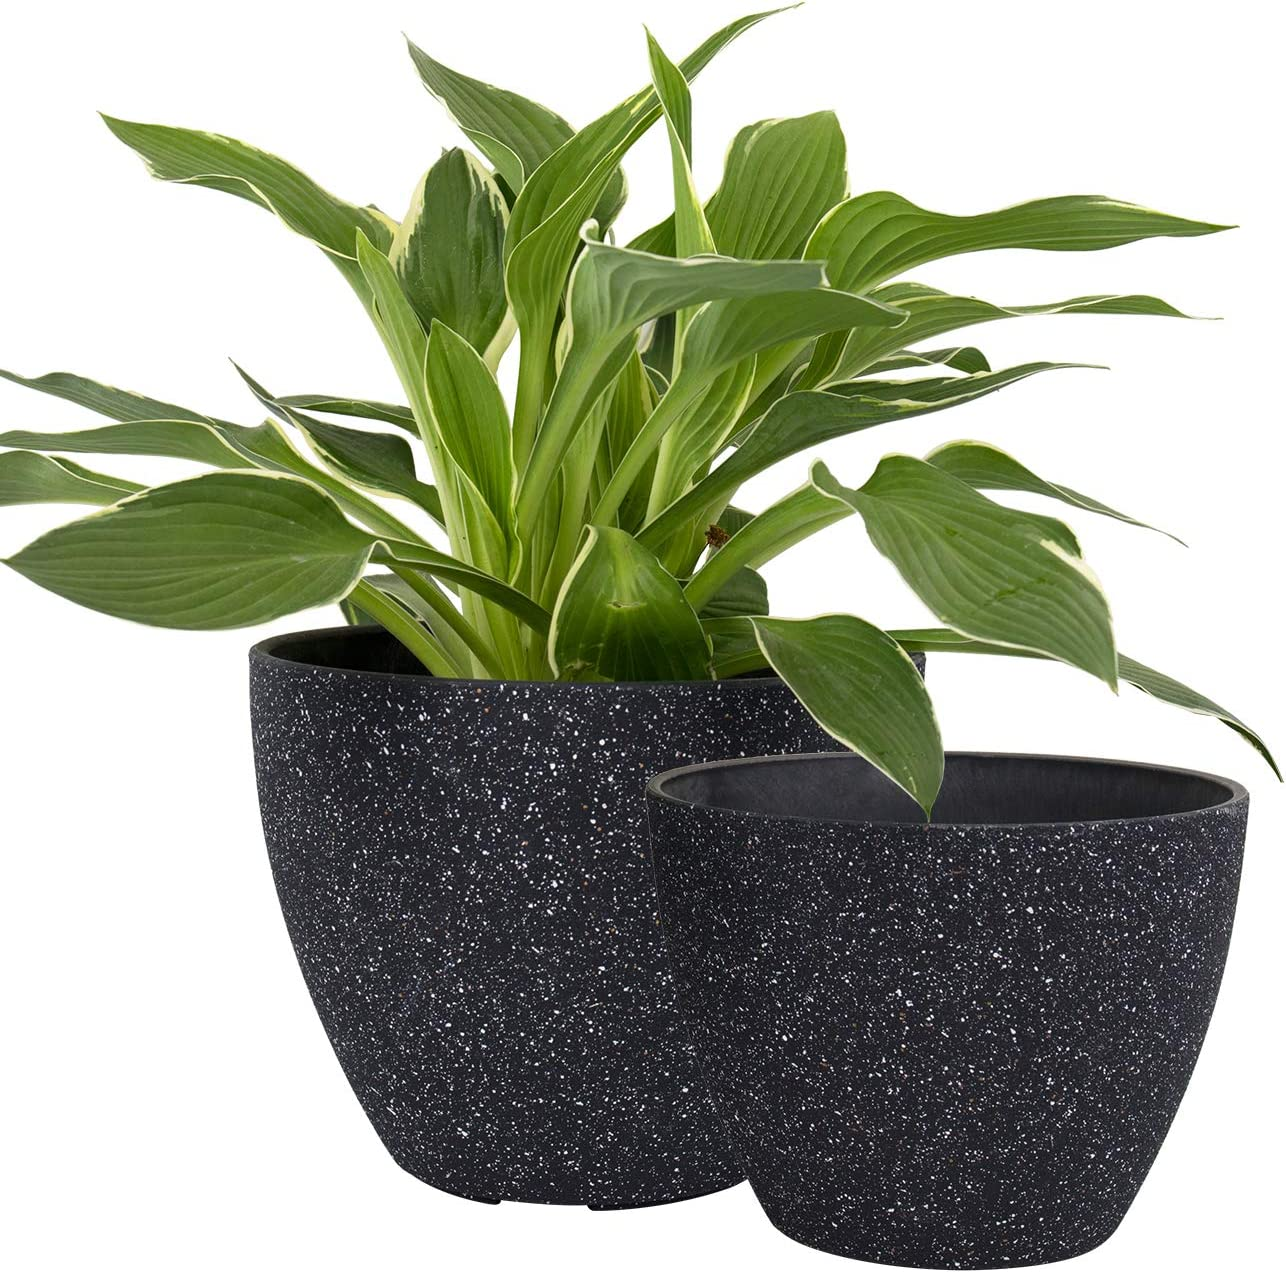 Flower Pots Outdoor Indoor Garden Planters, Plant Containers with Drain Hole, Speckled Black (8.6 + 7.5 Inch)